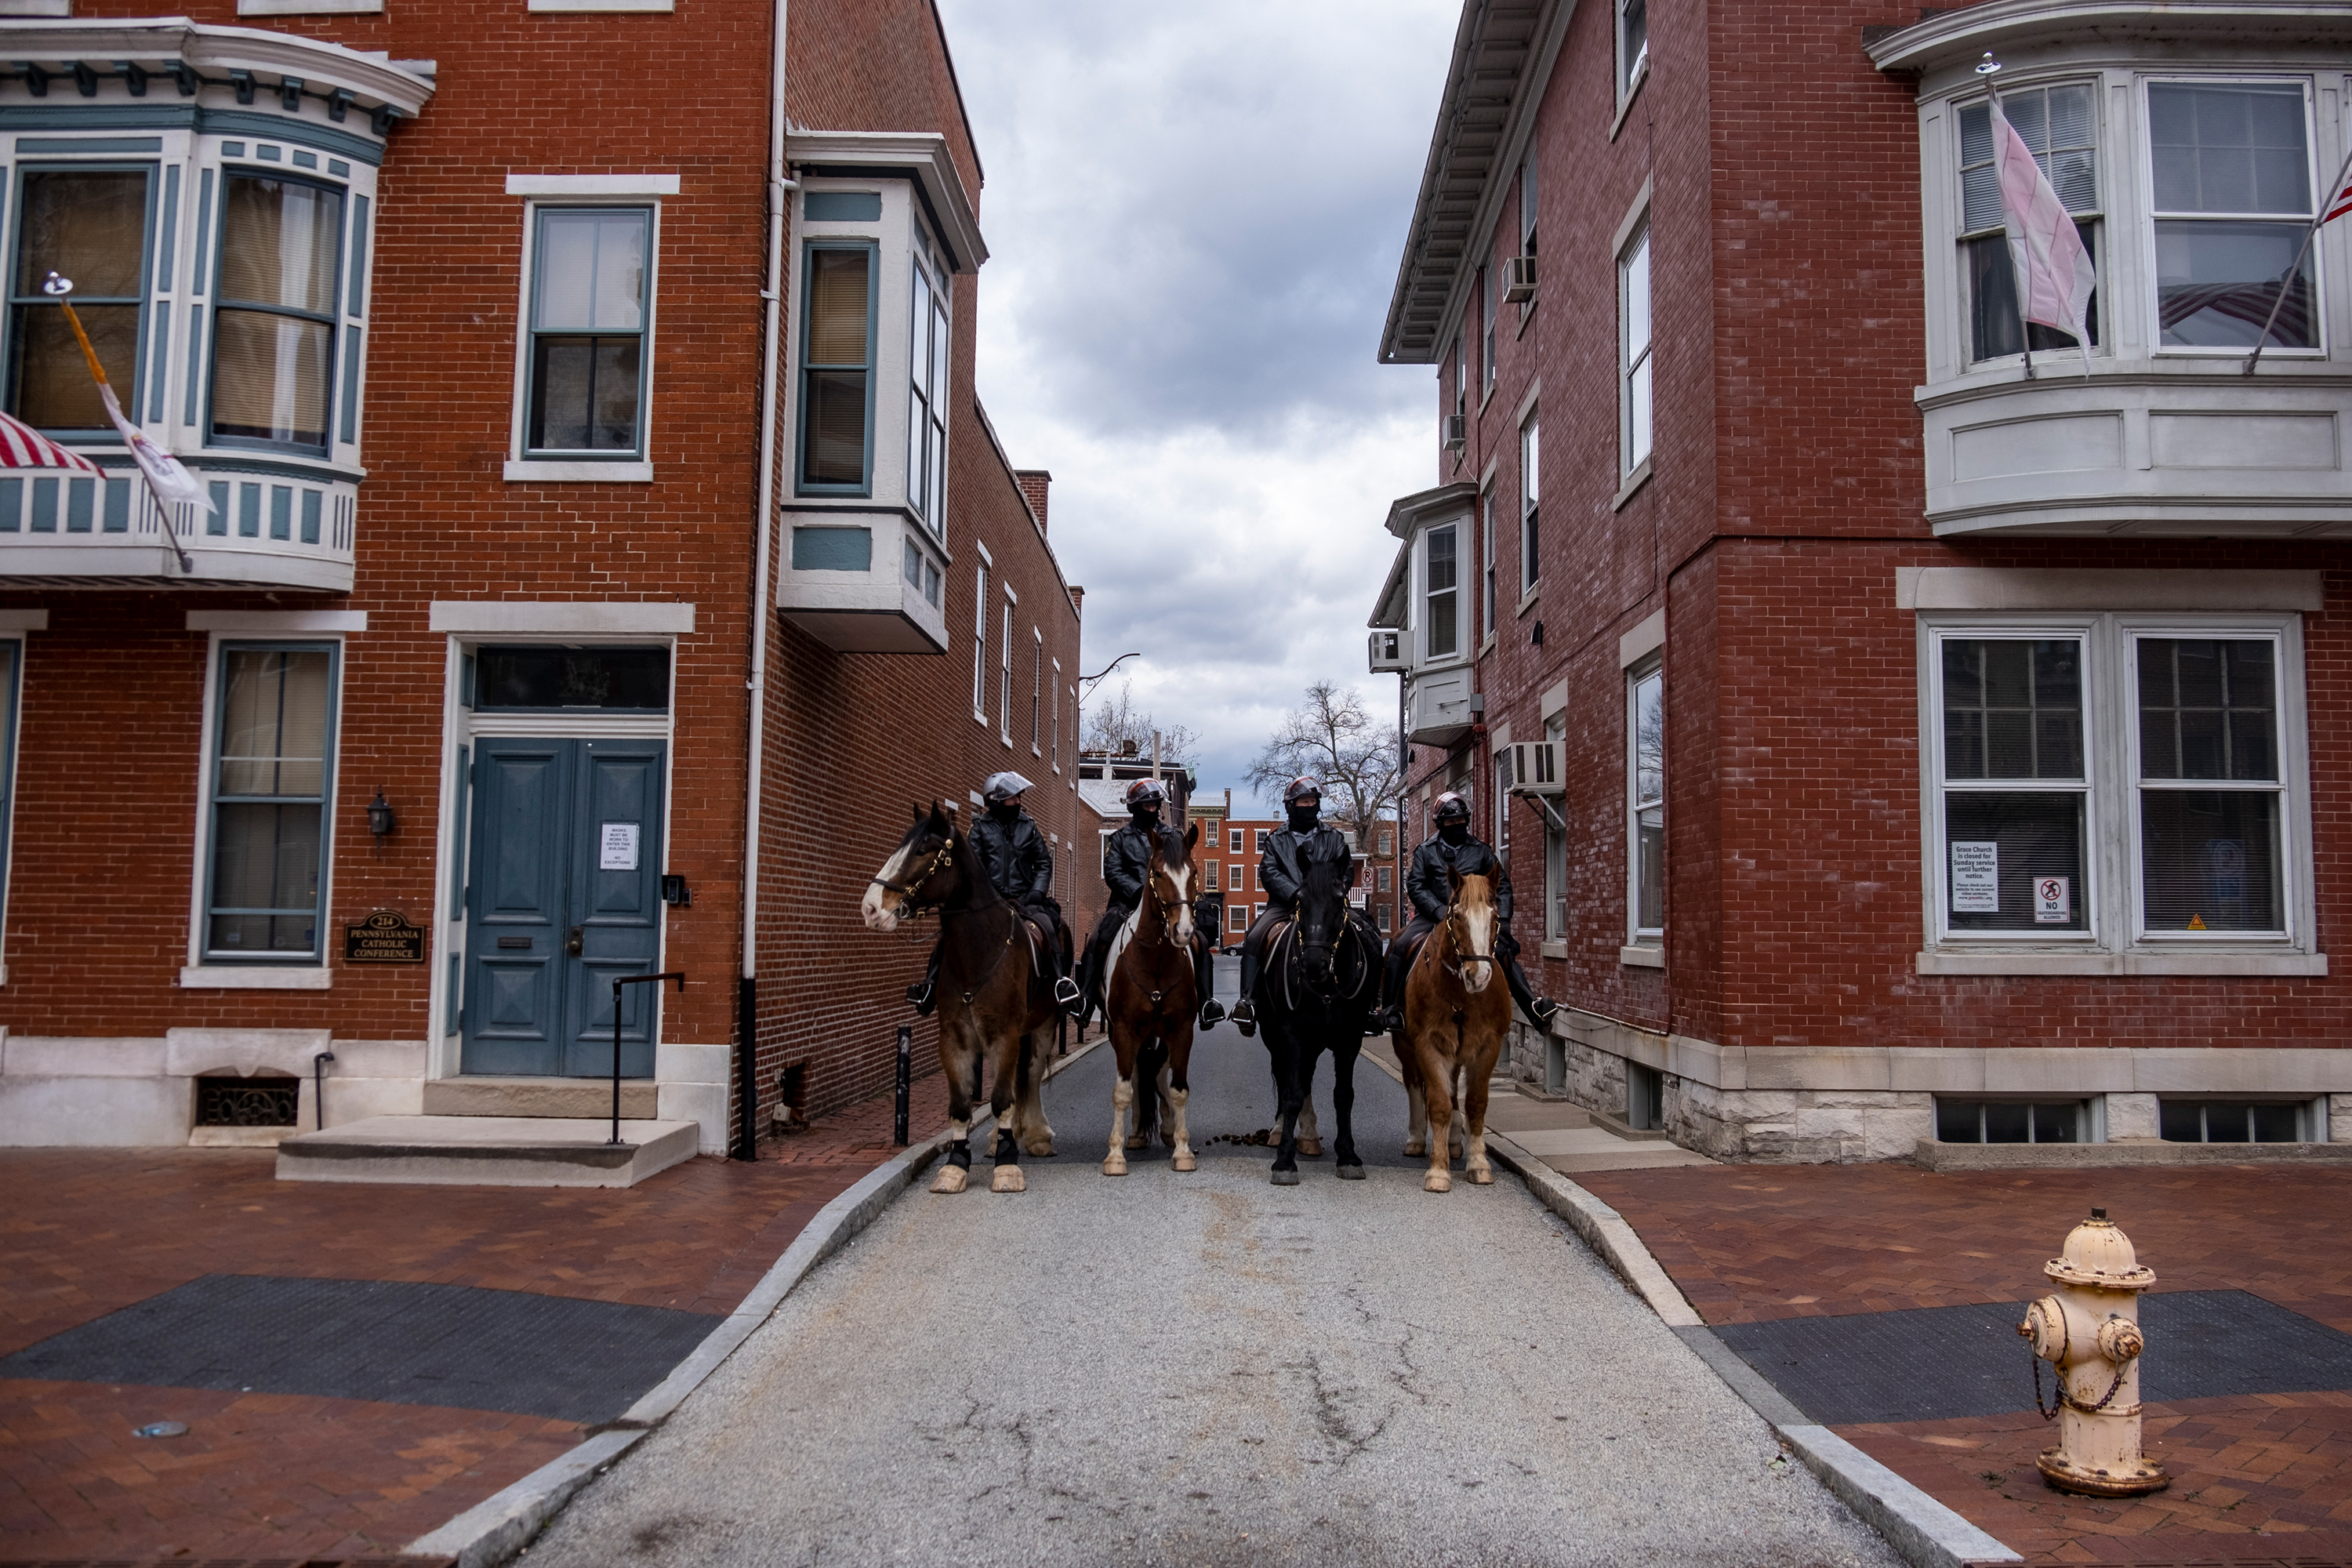 Police on the street of Harrisburg, PA, in response to threats against the capital.